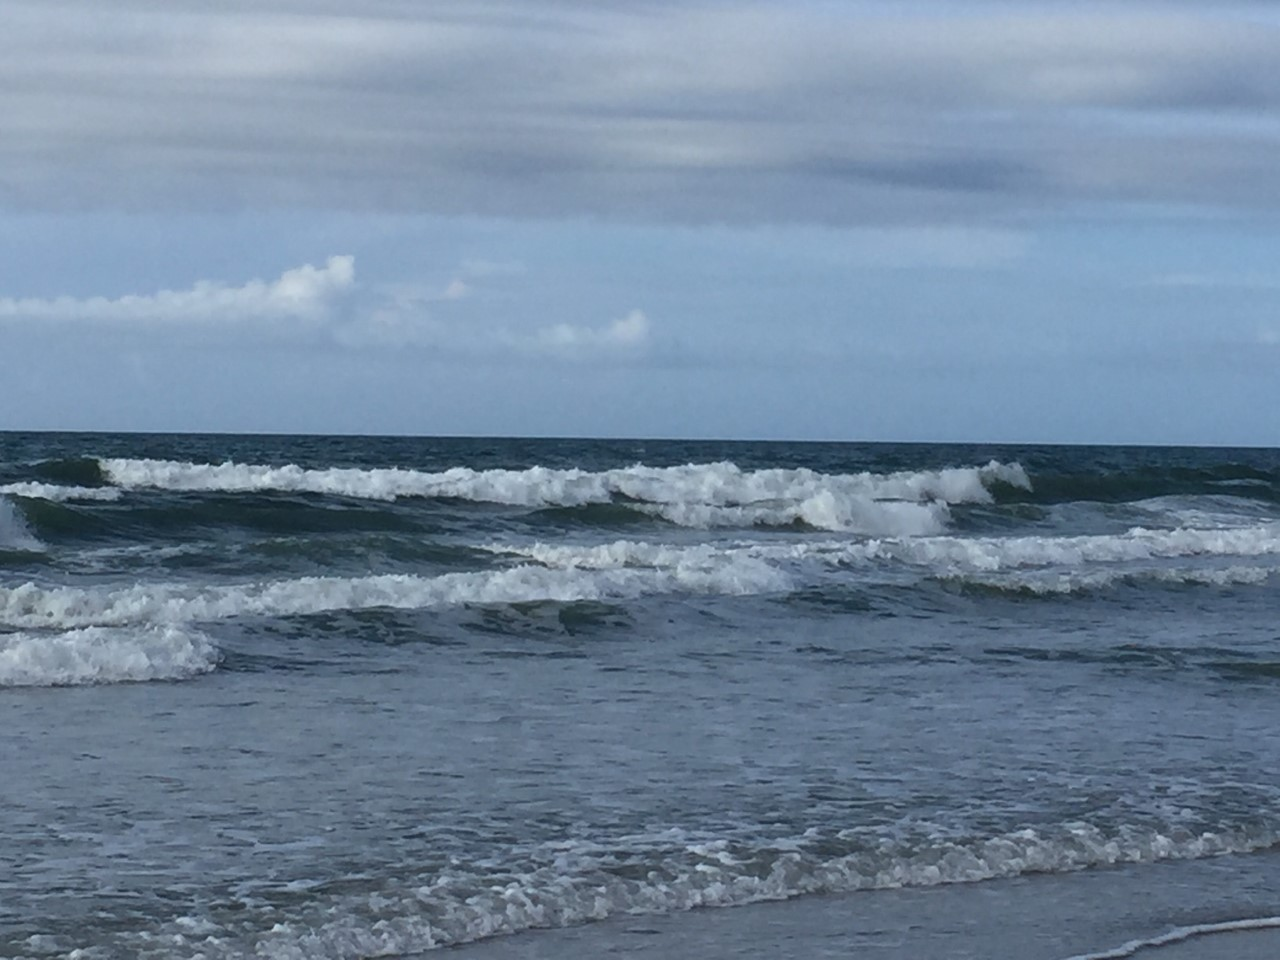 Image of a beach taken by Janie J while on vacation.